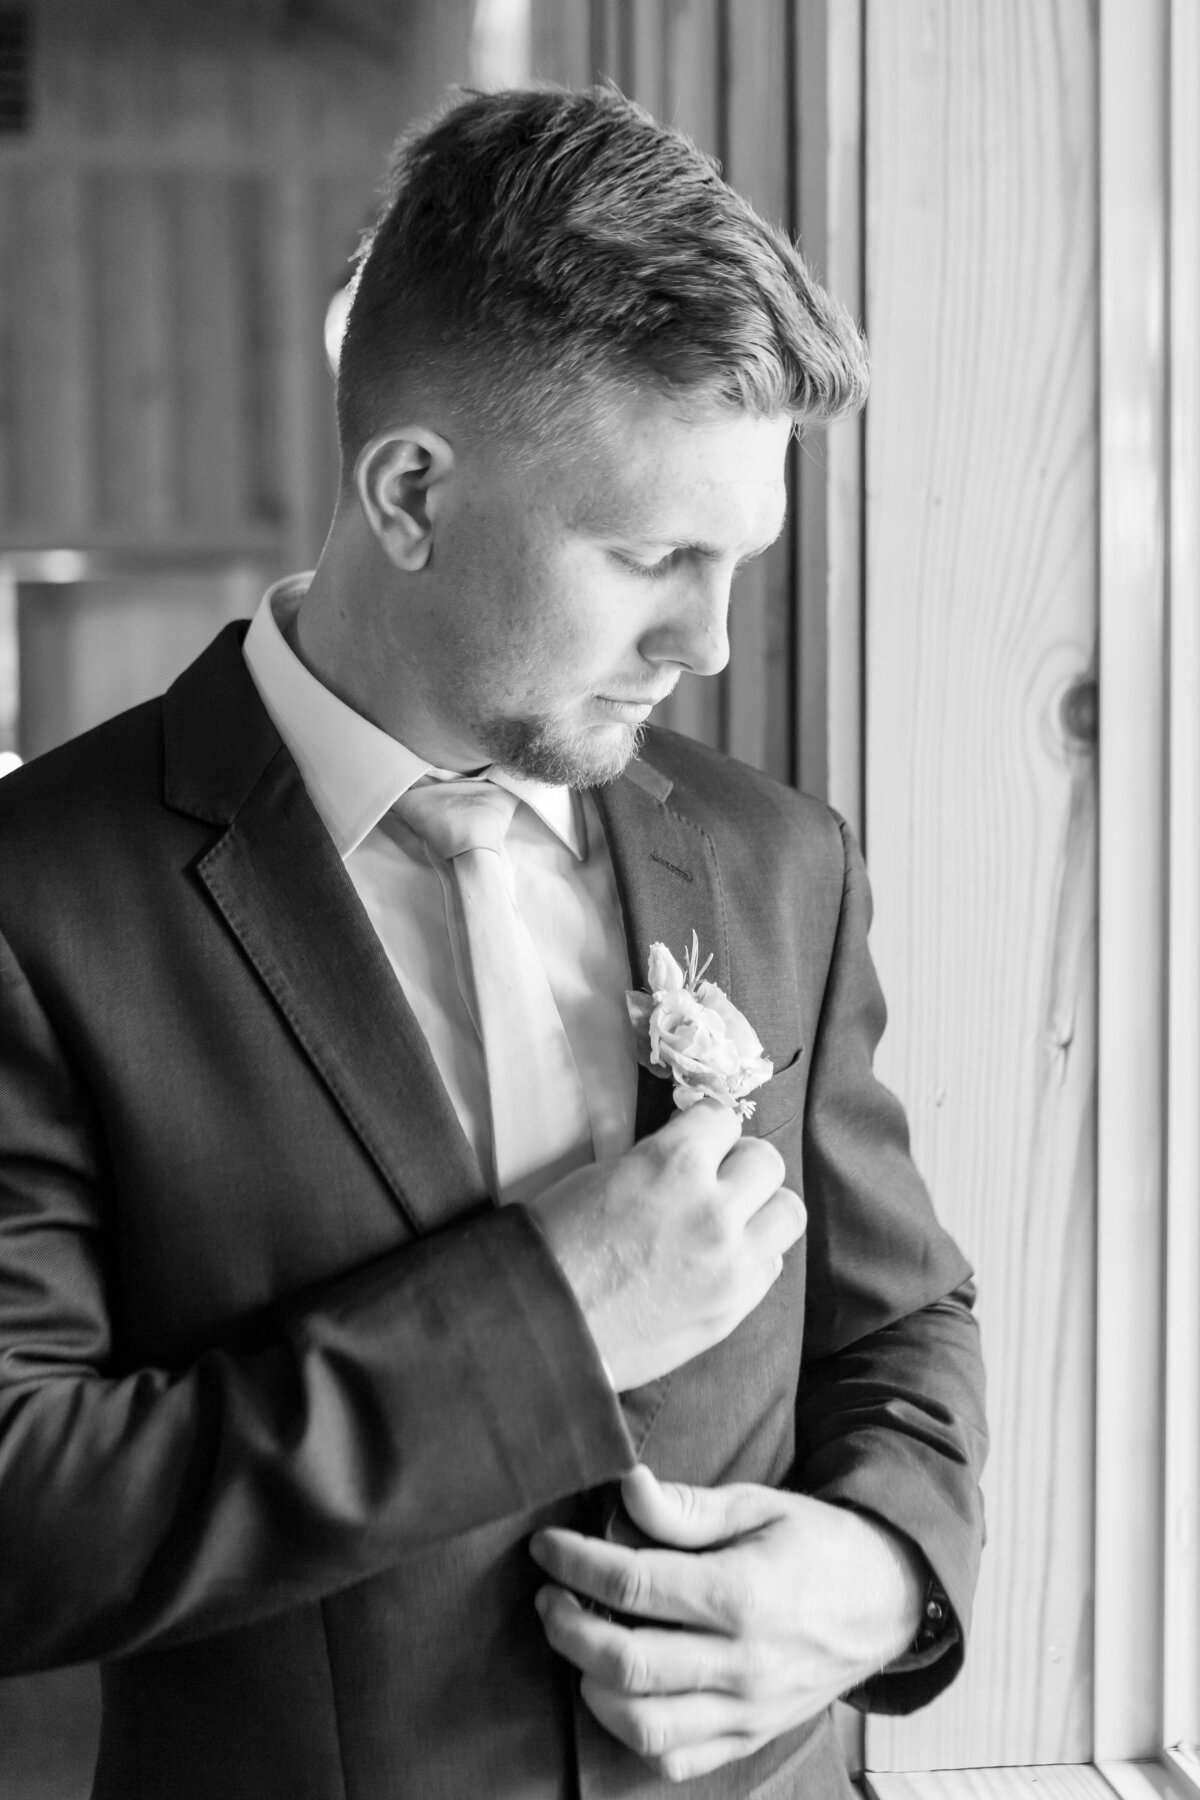 Groom Adjusting His Boutonnière Next to a Window